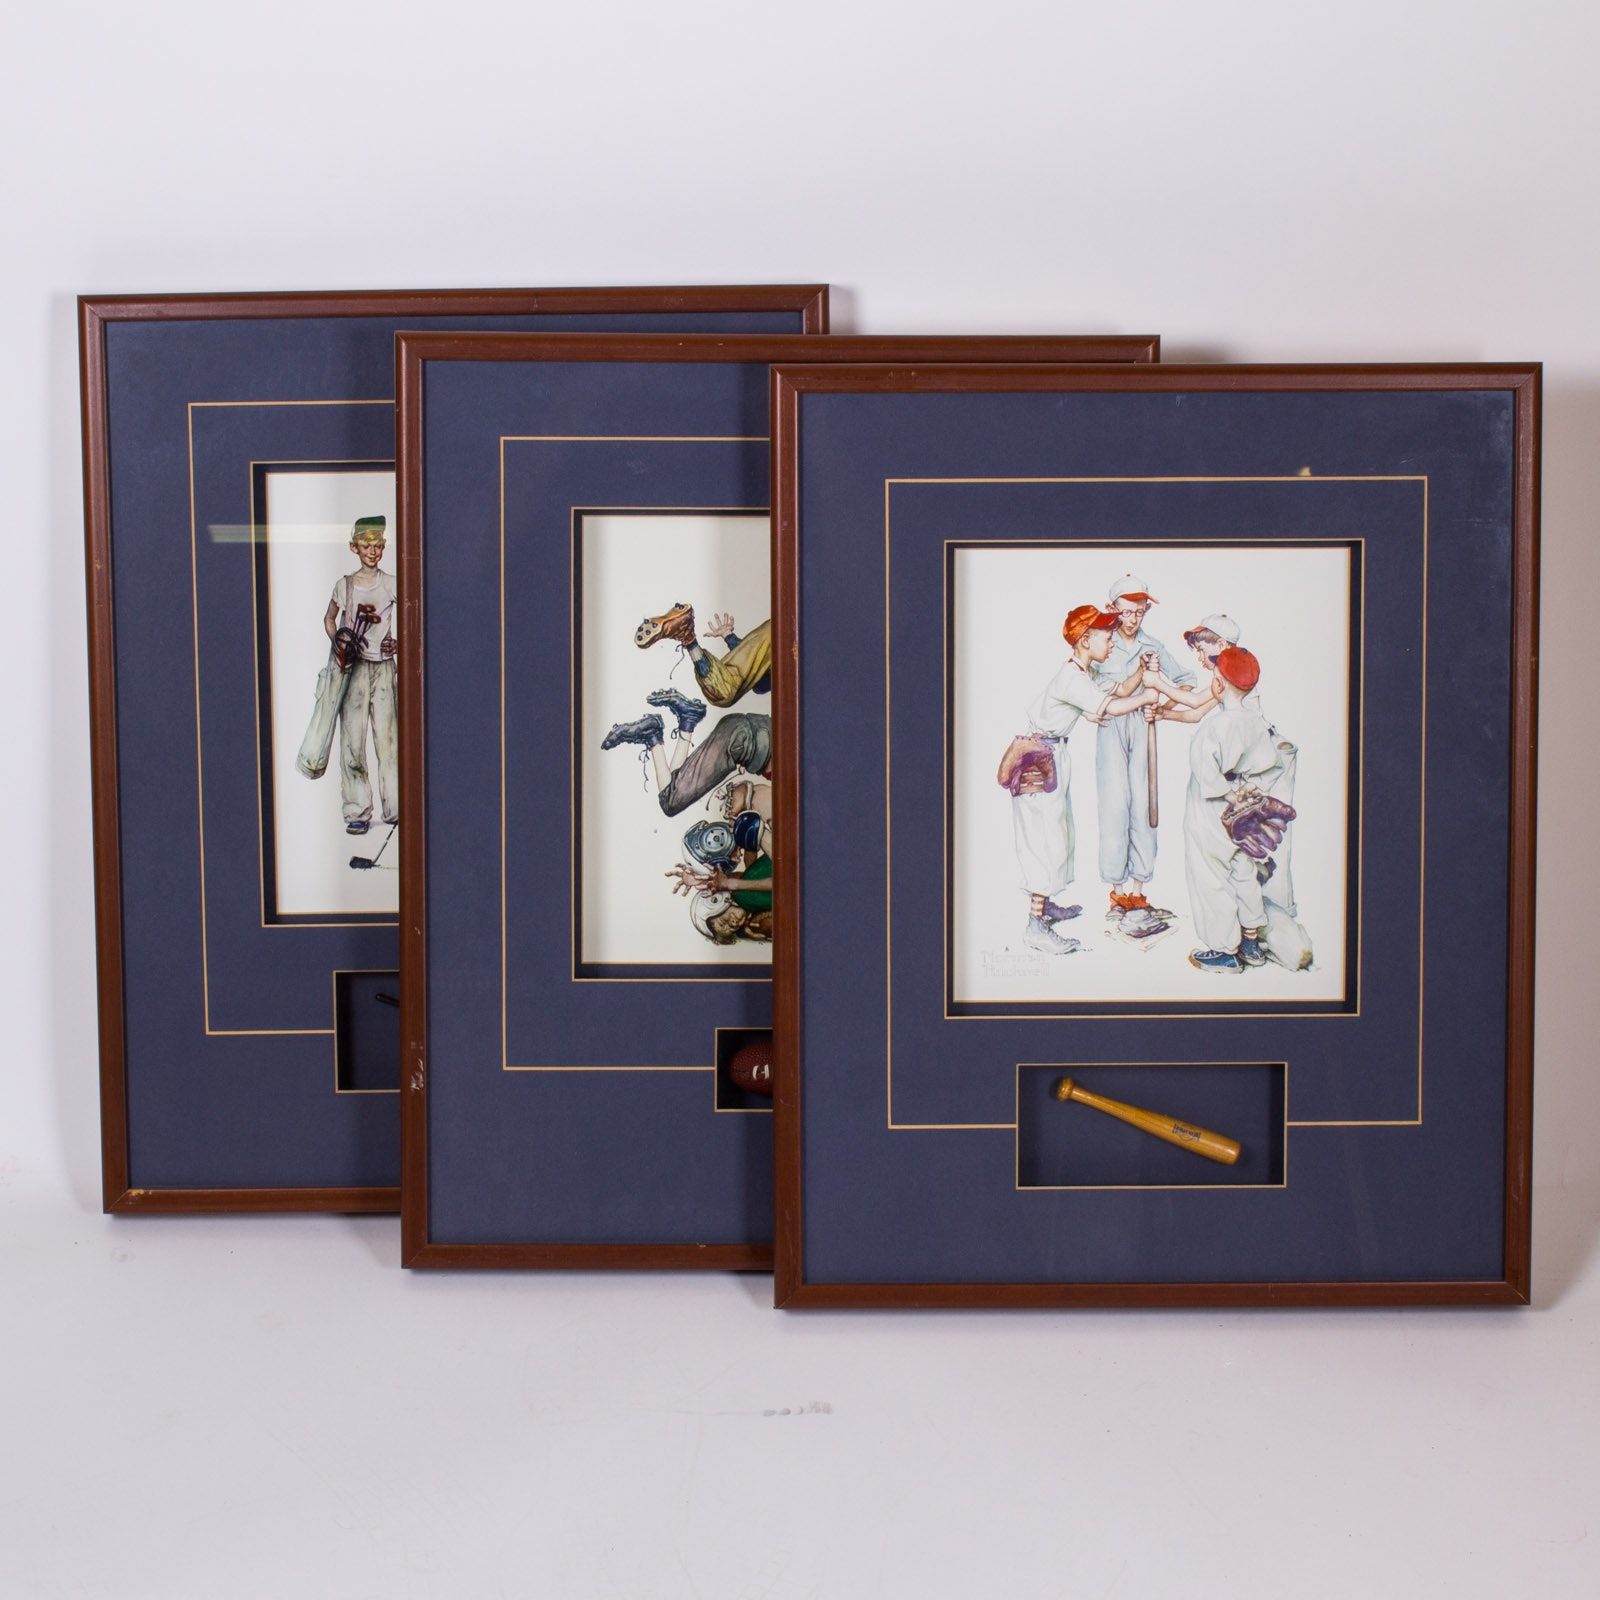 Vintage Style Sports Theme Offset Lithographs in Shadow Box Frames